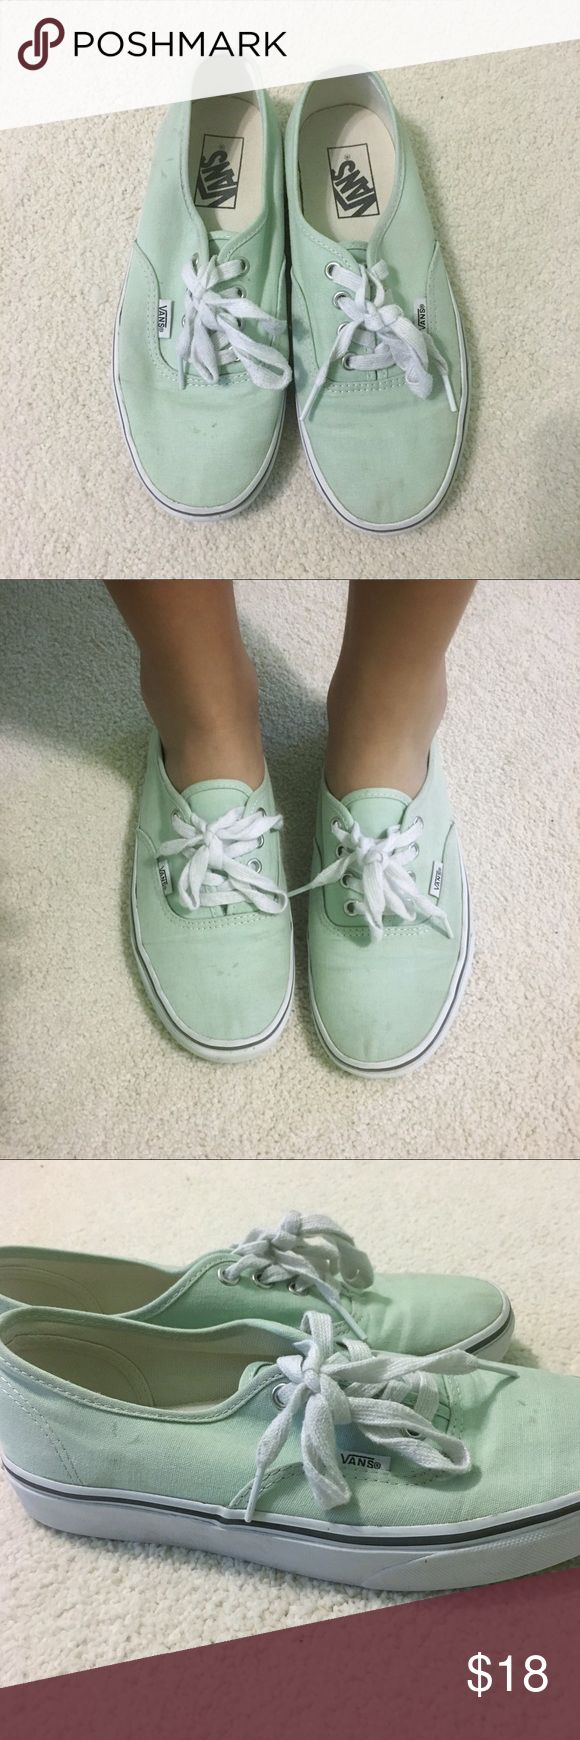 Mint Green Vans 7.5 Mint green vans. Size: 7.5 (Women's) Vans Shoes Sneakers